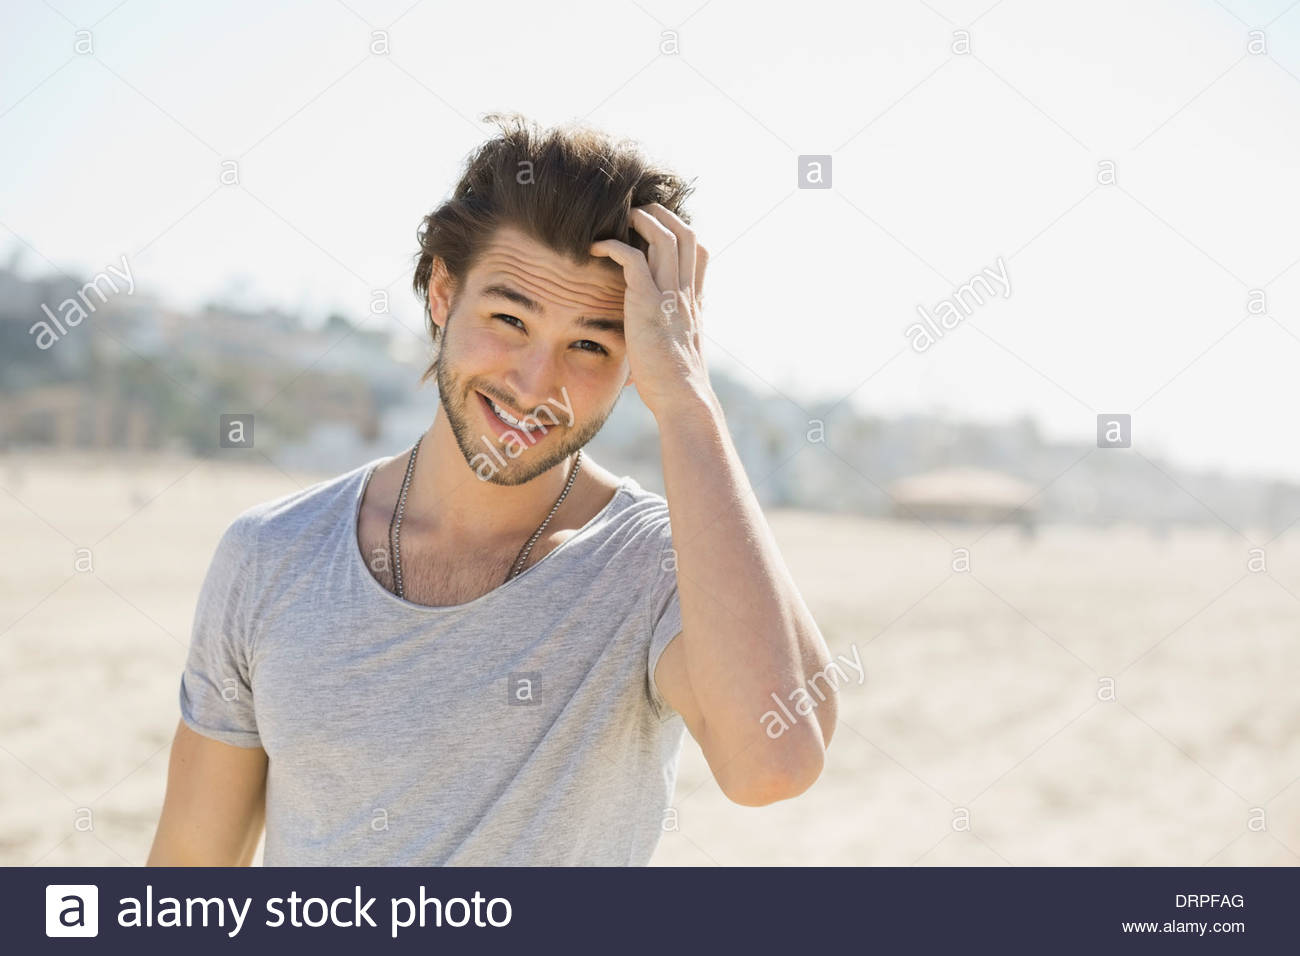 Portrait of man standing on beach - Stock Image